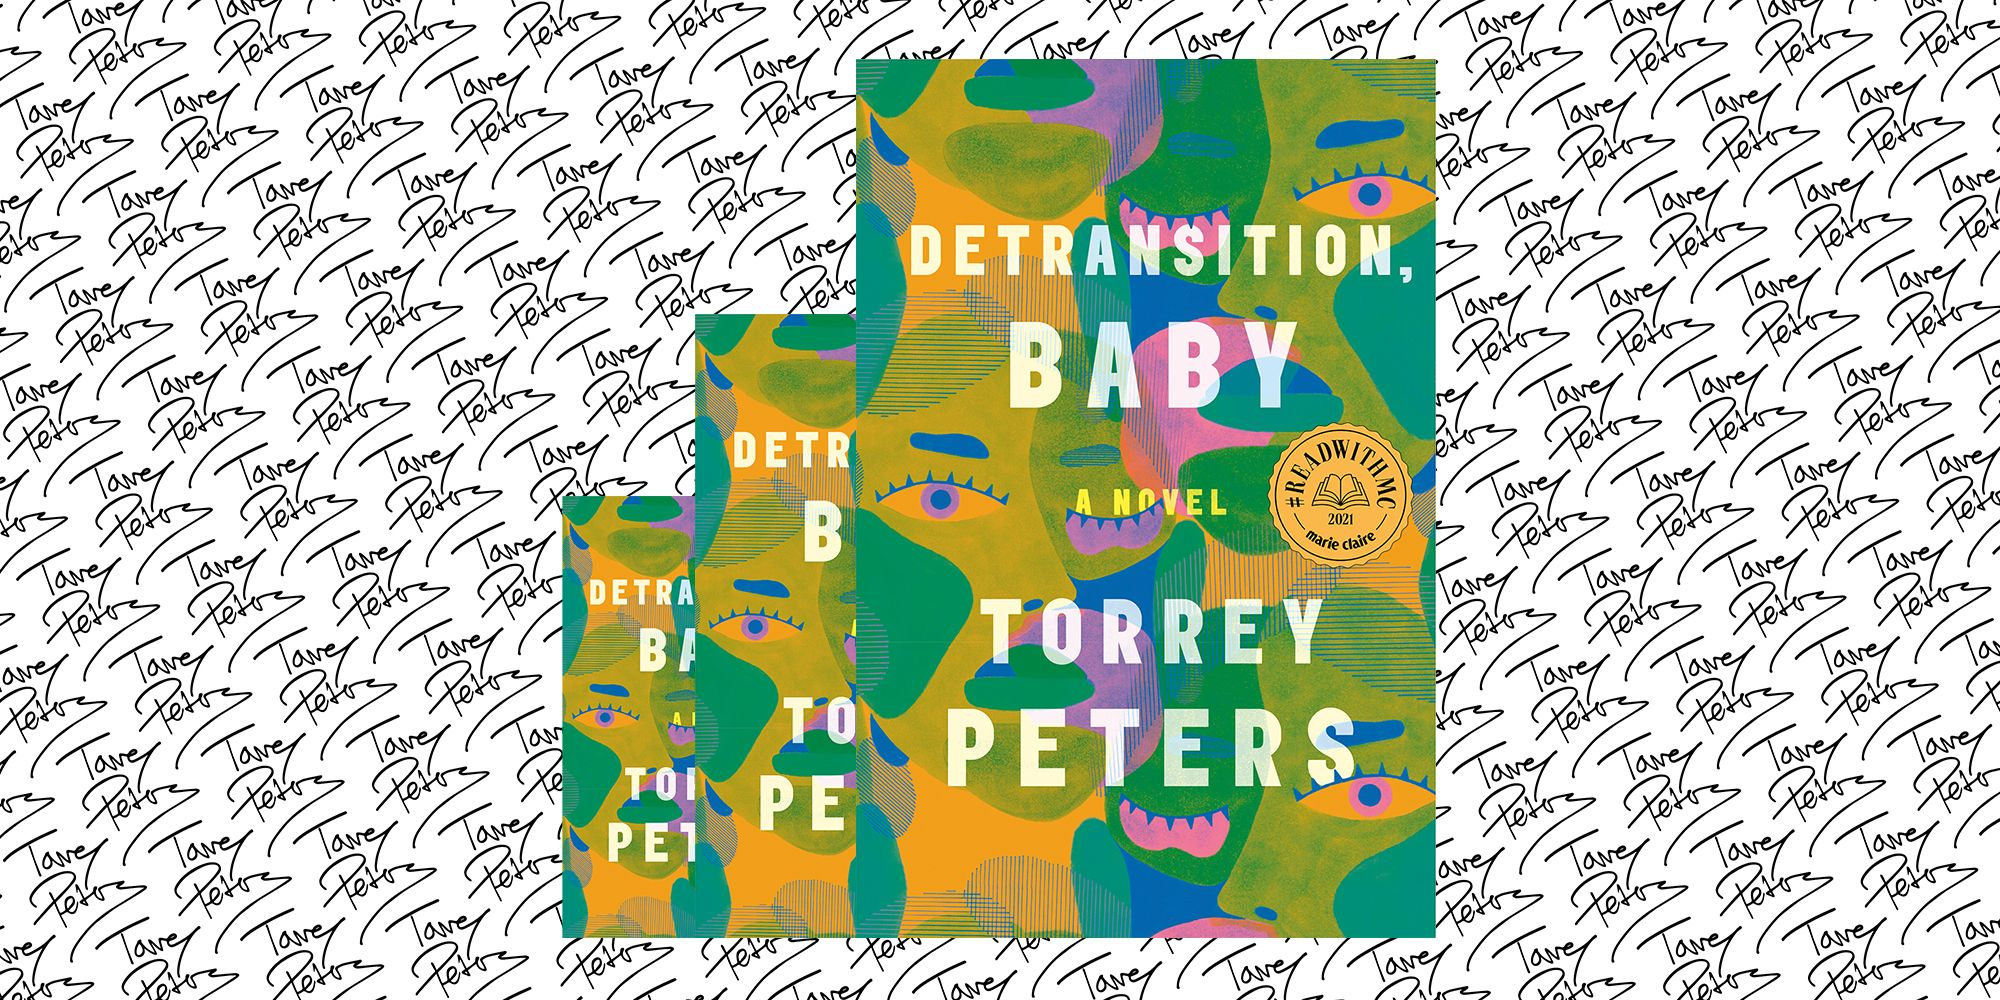 'Detransition, Baby' Is as Good as Everyone Says It Is